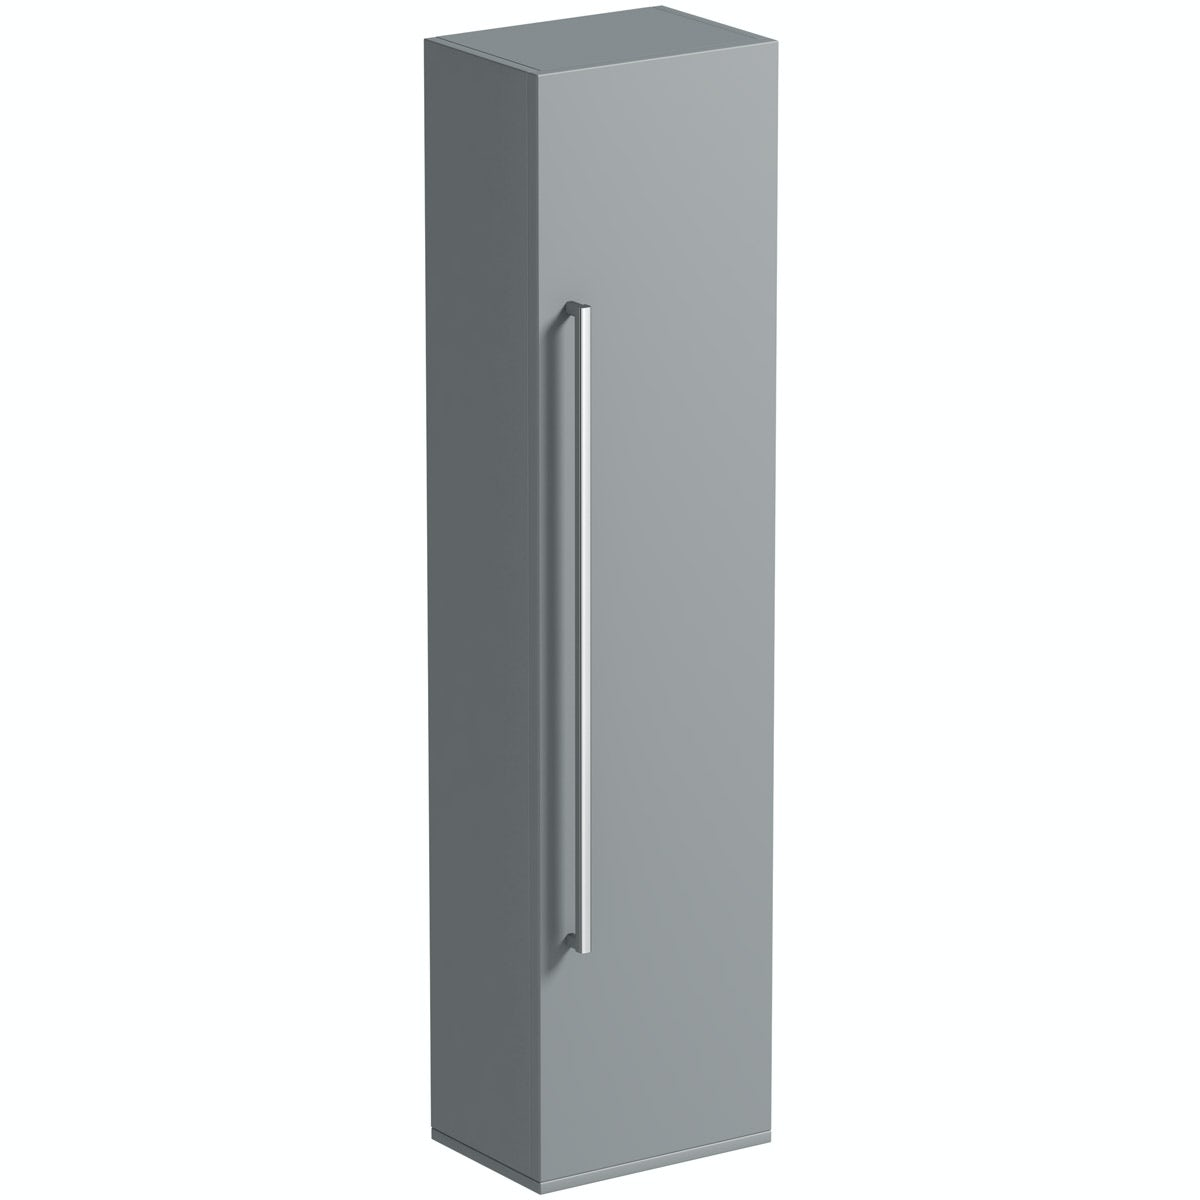 Orchard Derwent Grey Tall Storage Cabinet